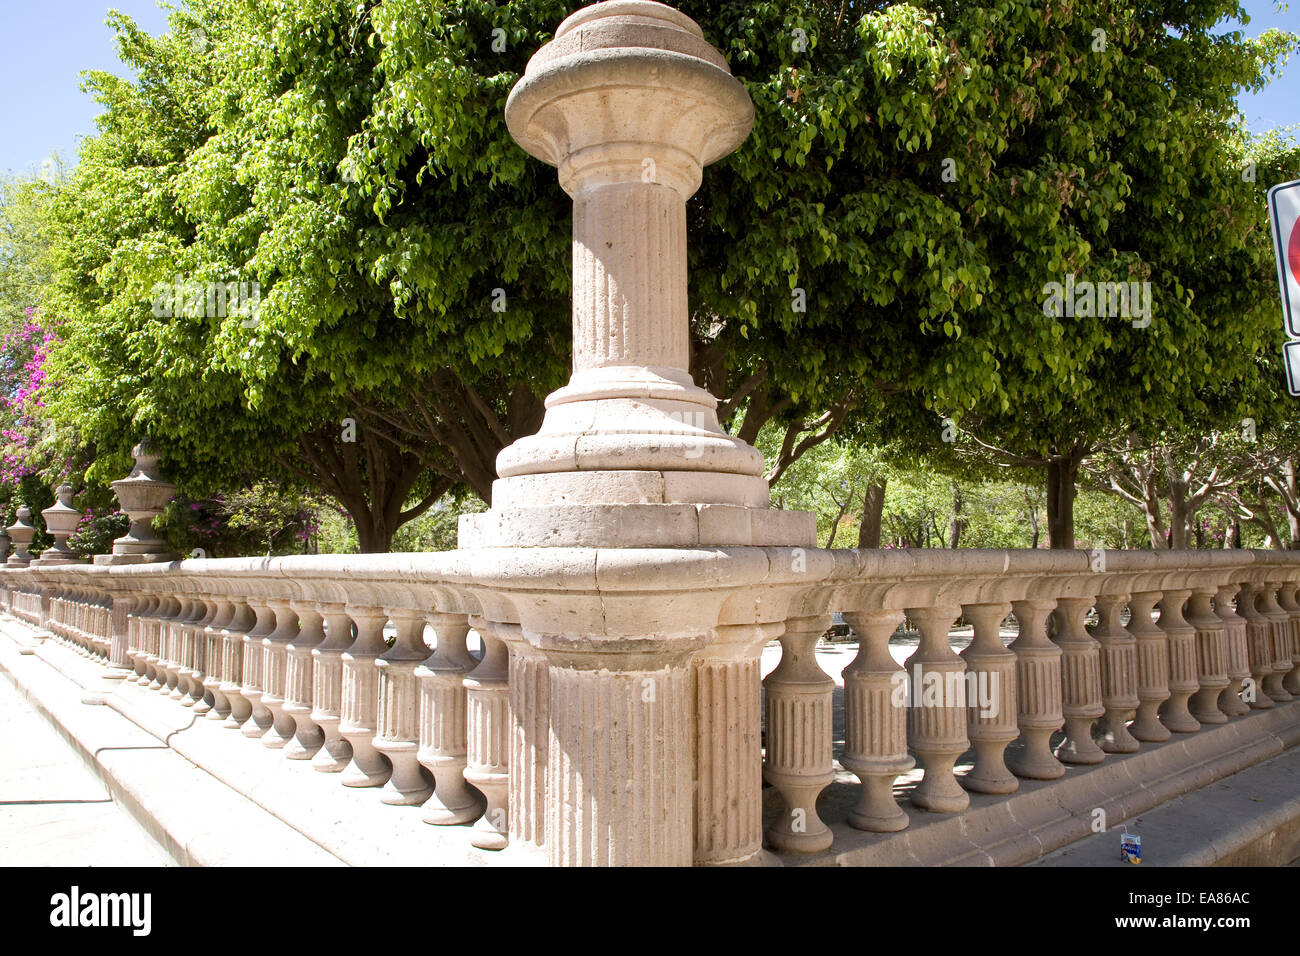 Jardin de San Marcos, Aguascalientes, Mexico Stock Photo: 75168644 ...